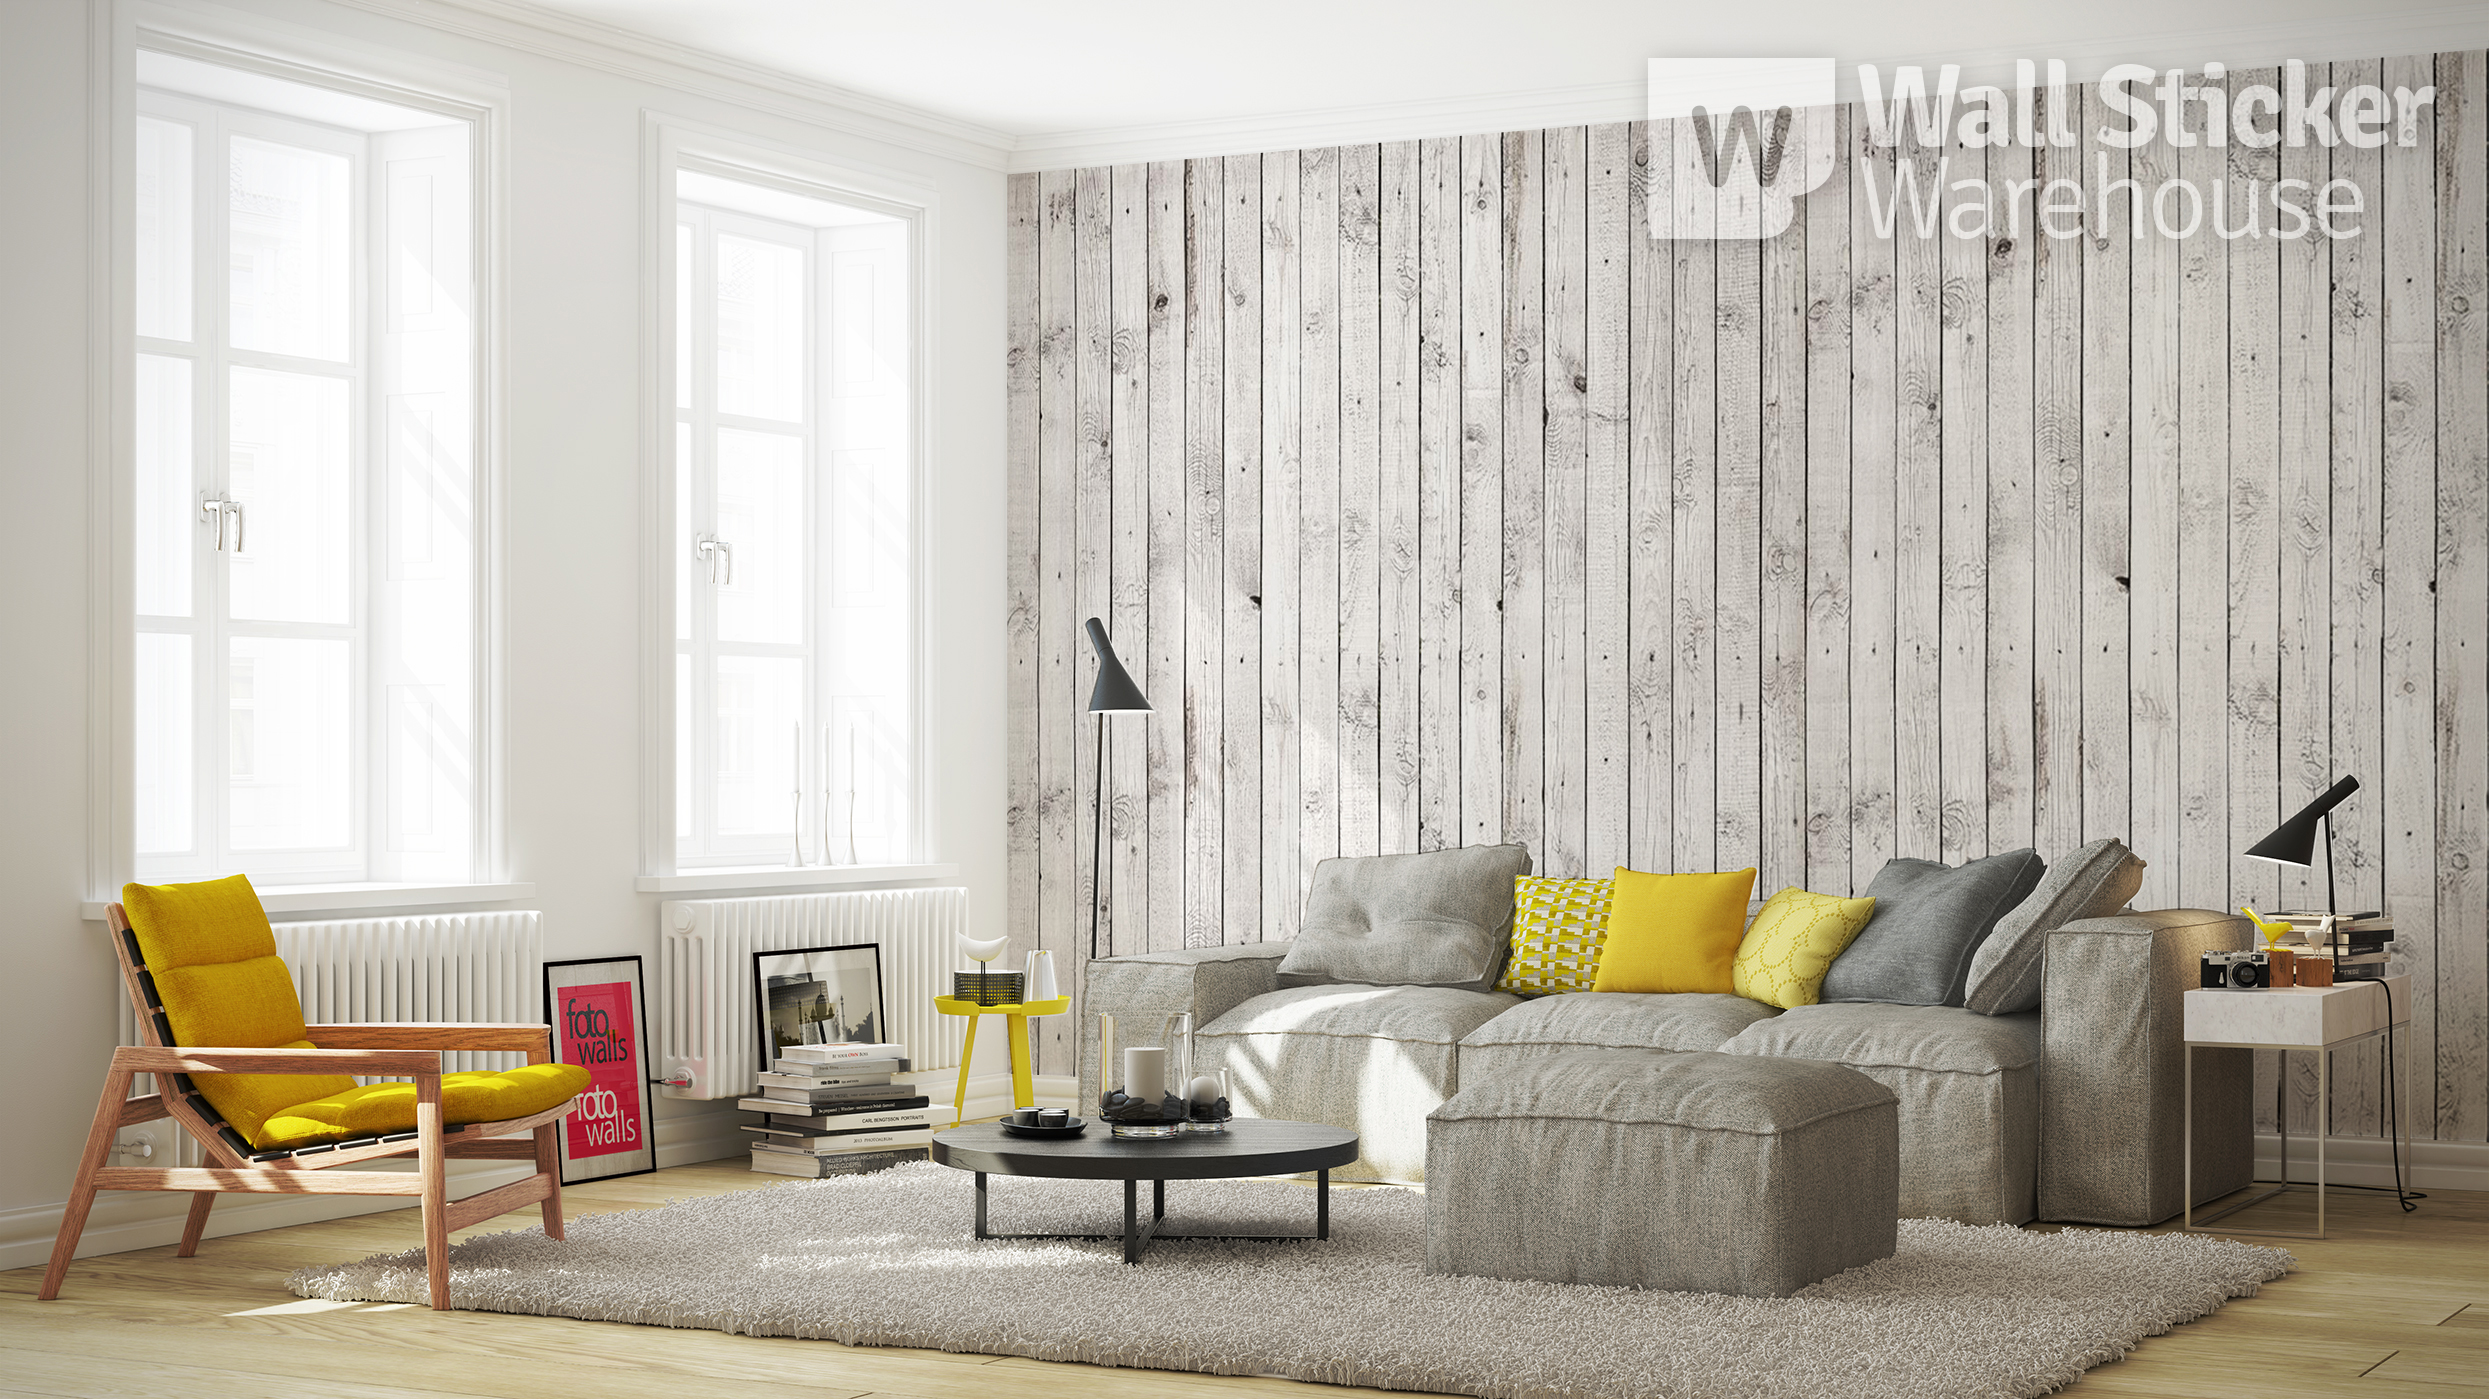 Comes supplied in wallpaper strips to create a giant image and an 2489x1400